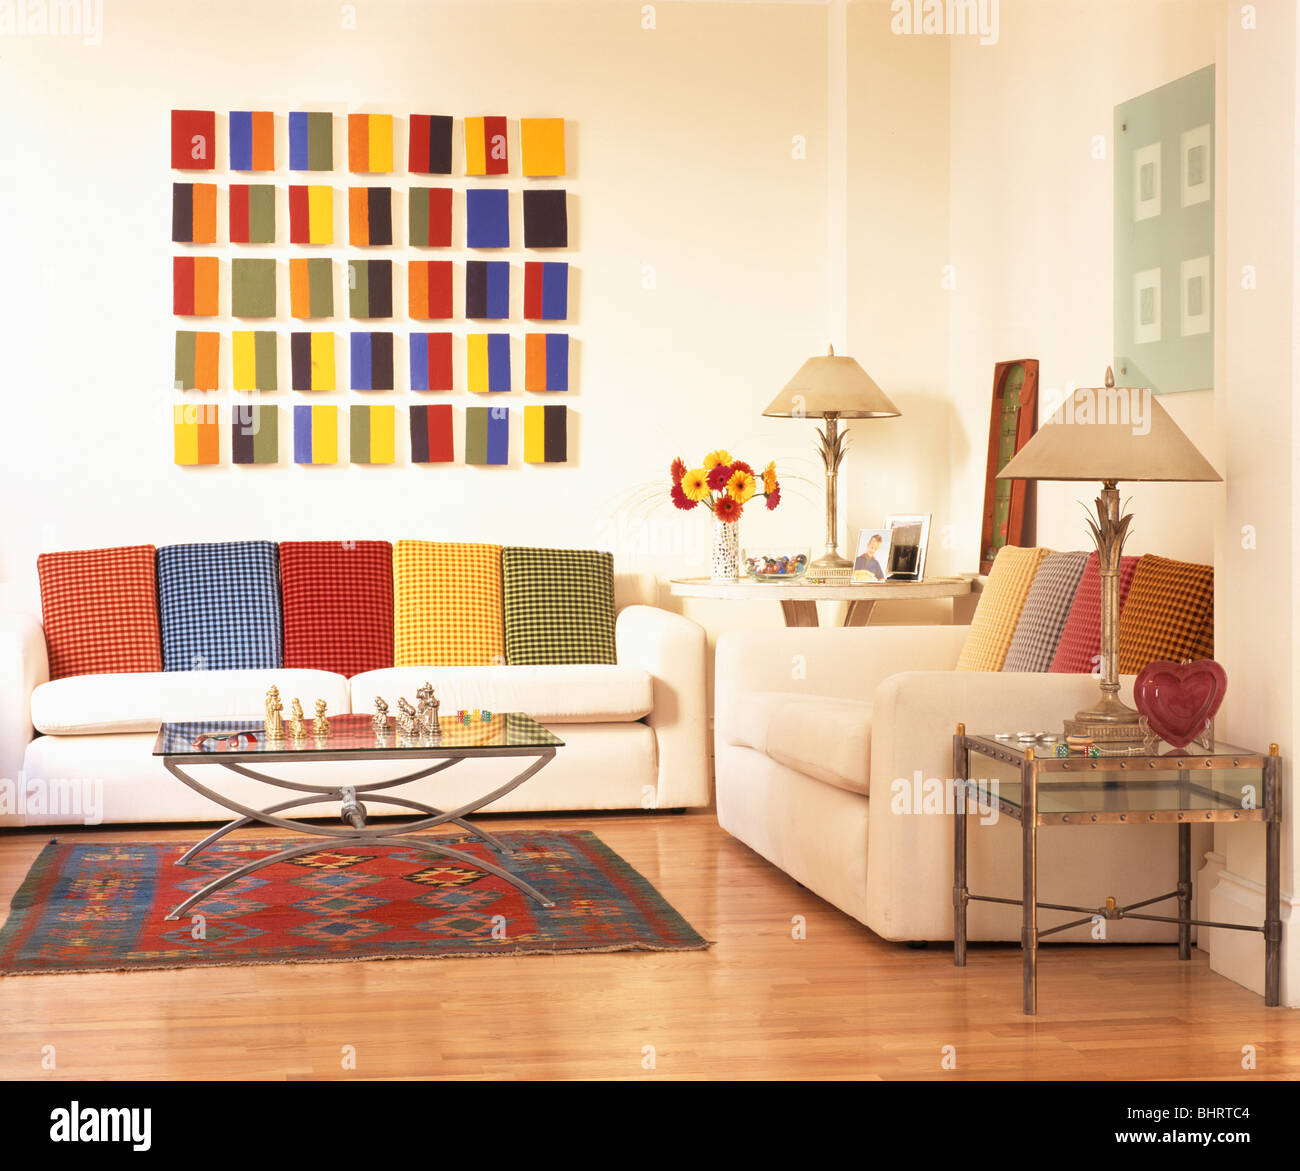 bright colored living room rugs design colour ideas brightly geometric picture above white sofa with colorful cushions in modern rug on wooden floor